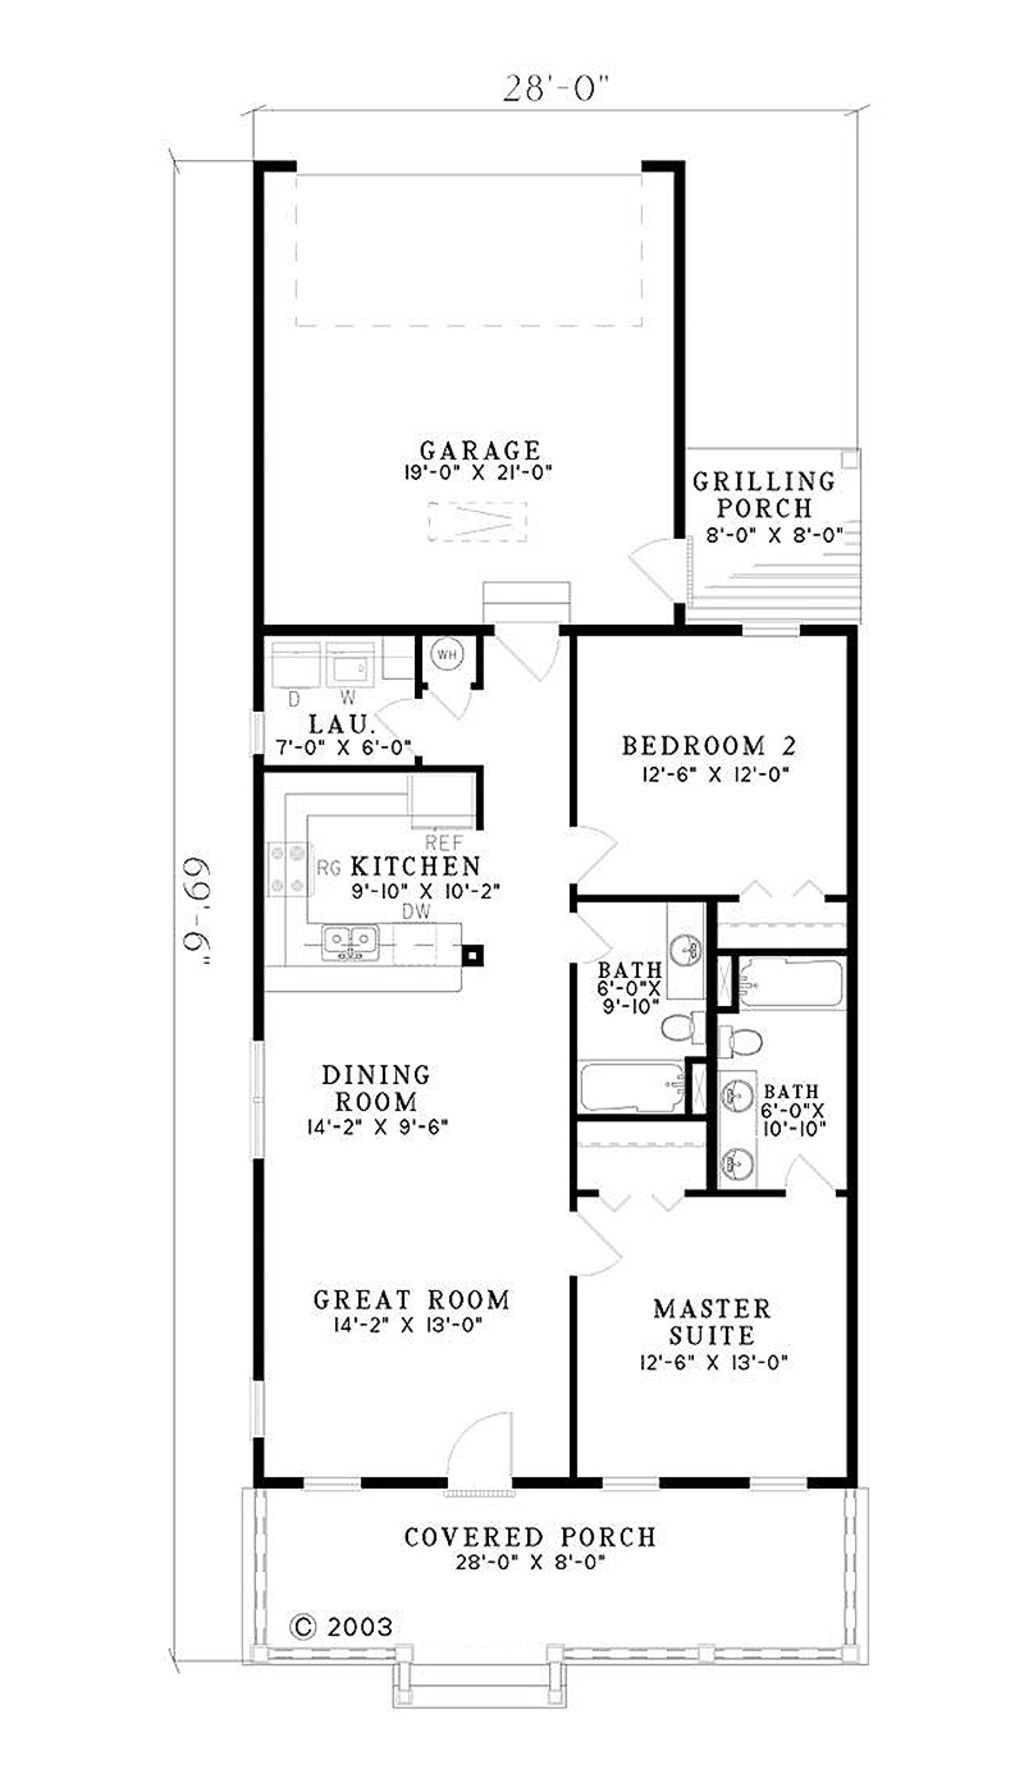 southern style house plan 2 beds 2 baths 1120 sq ft plan 17 554 ranch house plans